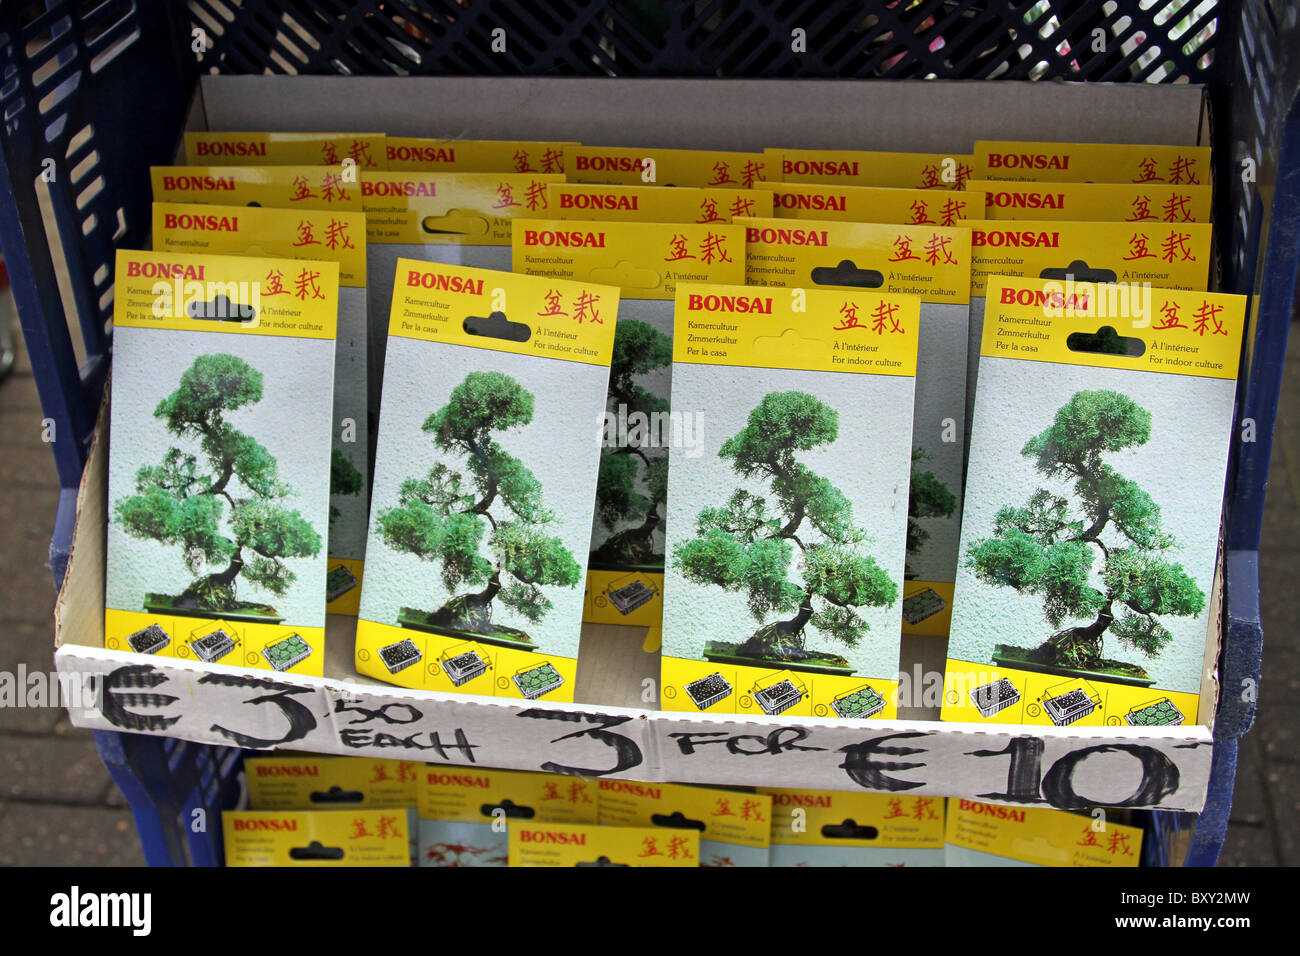 Bonsai Tree Seeds For Sale In Amsterdam Holland Stock Photo Alamy